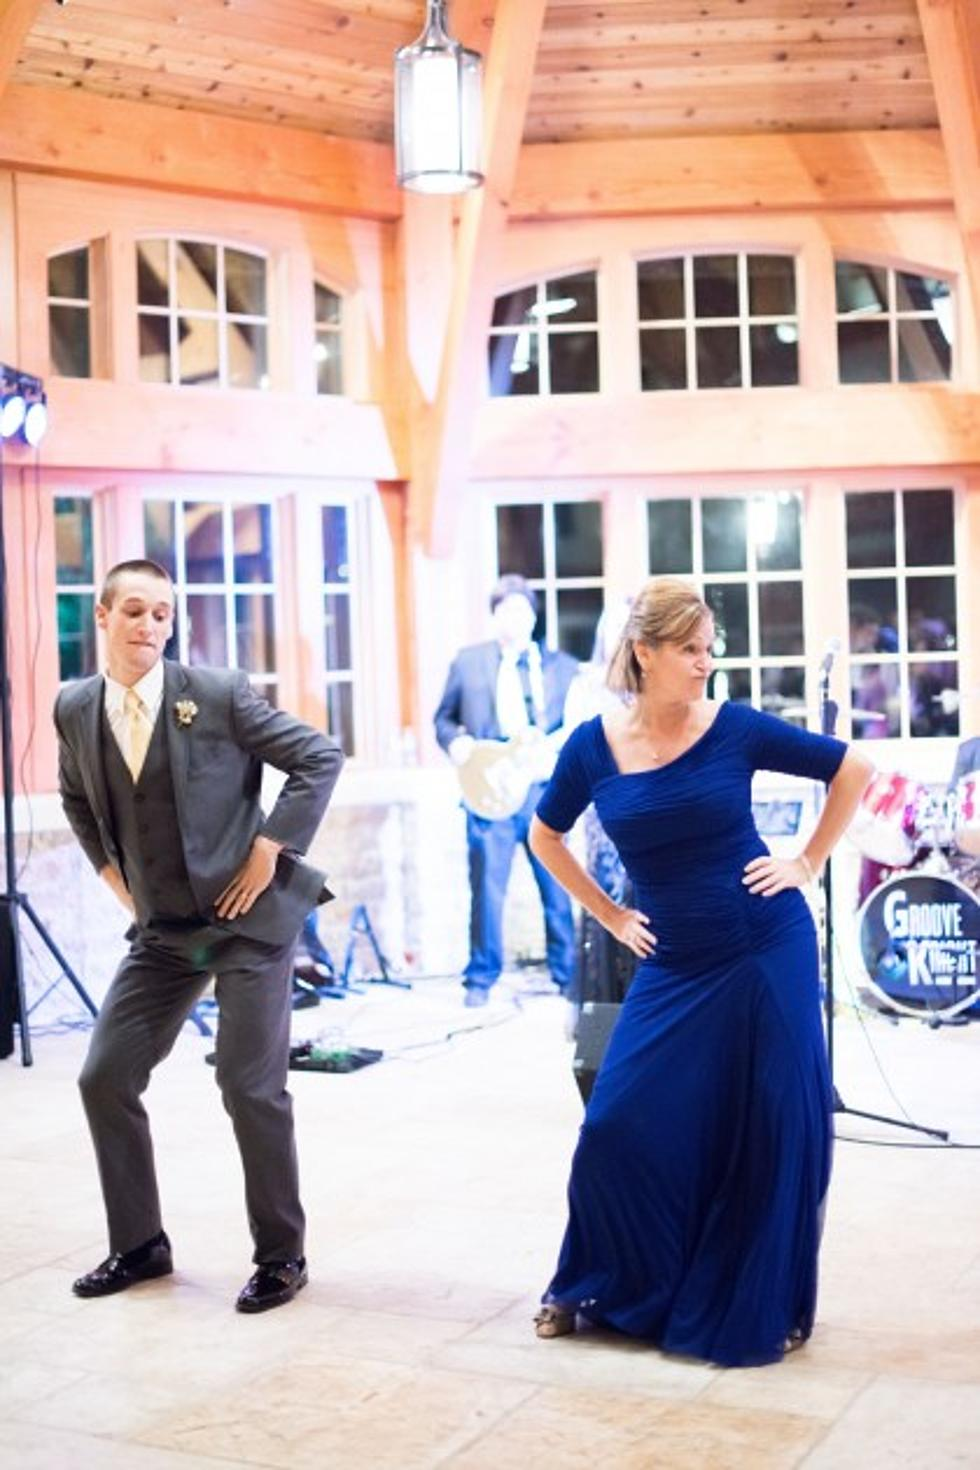 A Wedding Reception Mother-Son Dance to End All Dances [Video]